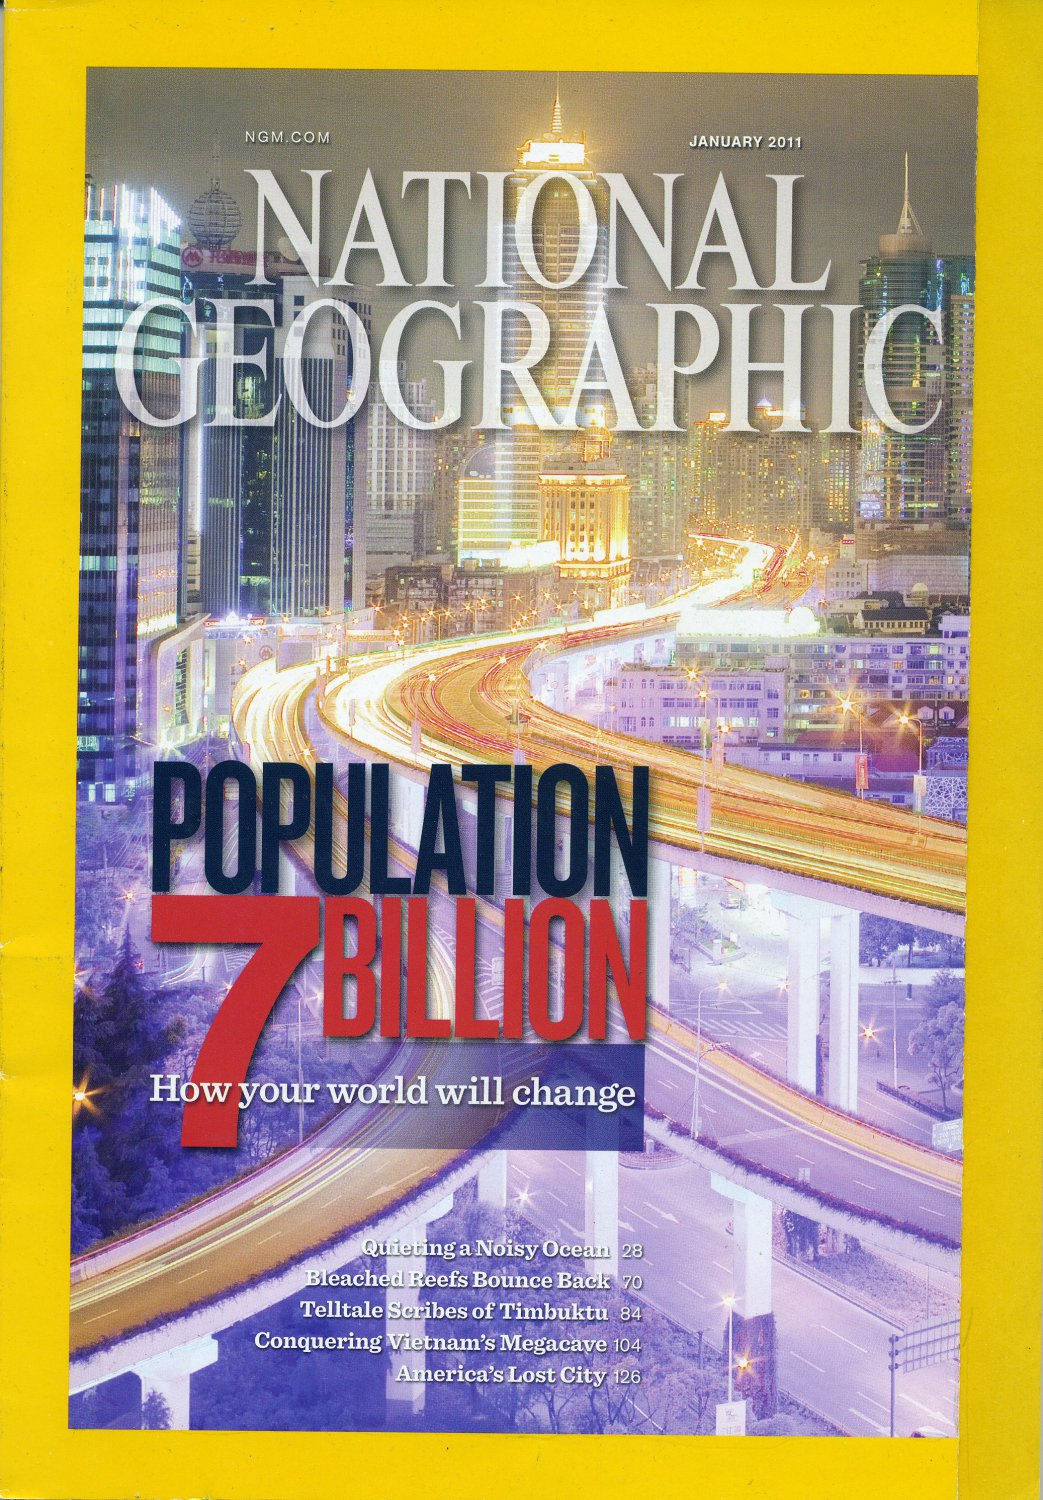 the issue of overpopulation in 7 billion a national geographic magazine video Some time late in 2011—at least cover story on population for national geographic magazine the issue, which tackles the 7 billion.